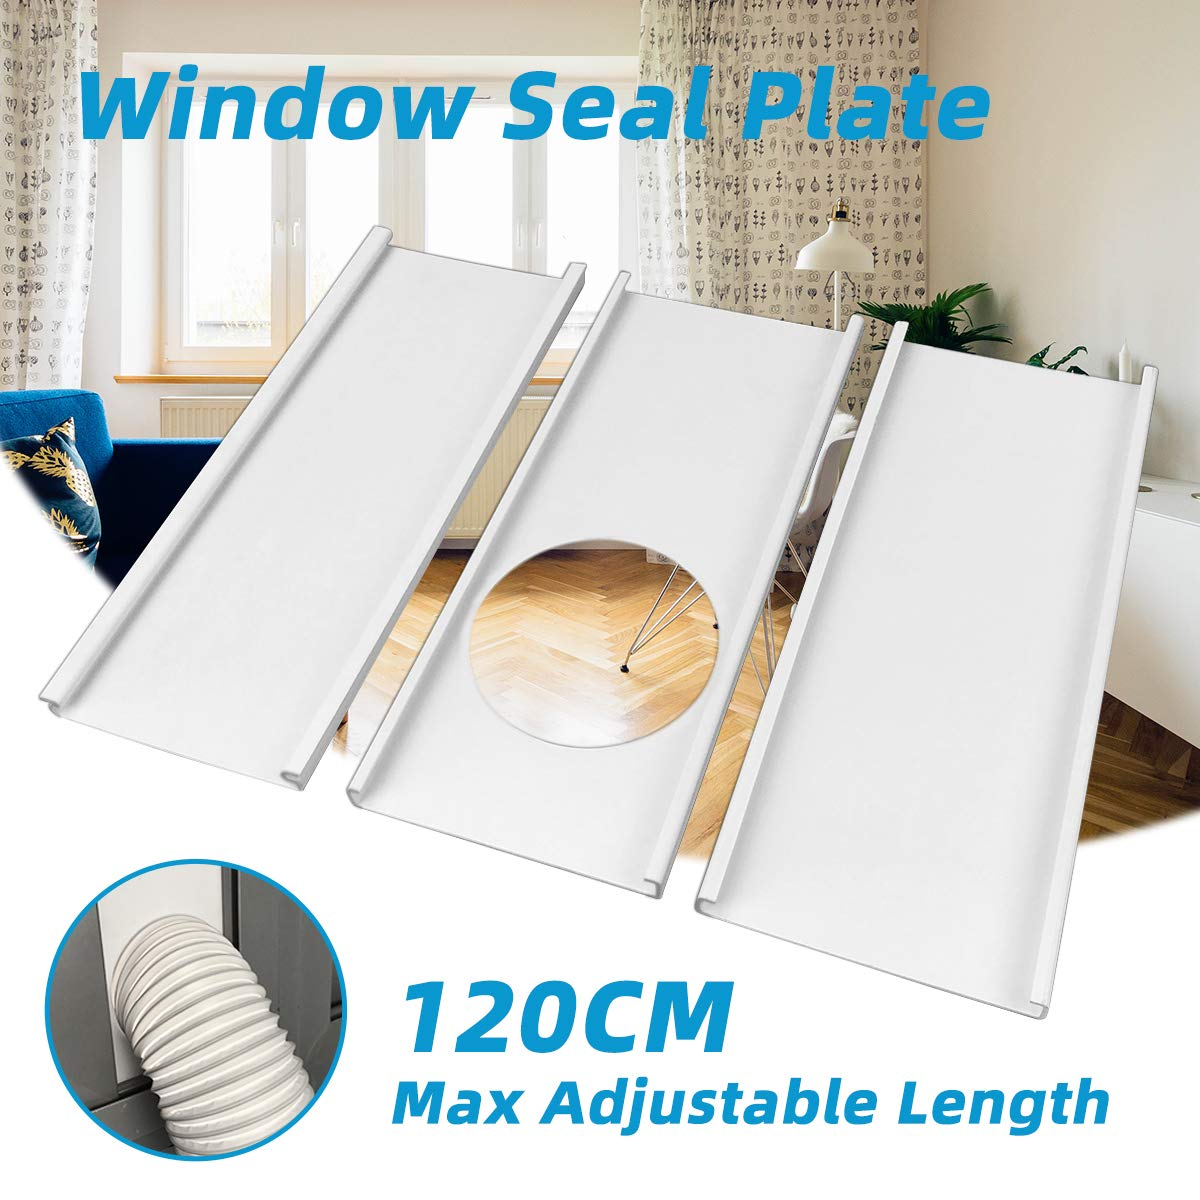 Jeacent Portable Air Conditioner Window Seal Plates Kit, Plastic AC Vent Kit for Sliding Glass Doors and Windows, Adjustable Length Panels for Exhaust Hose of 6'' Diameter by Jeacent